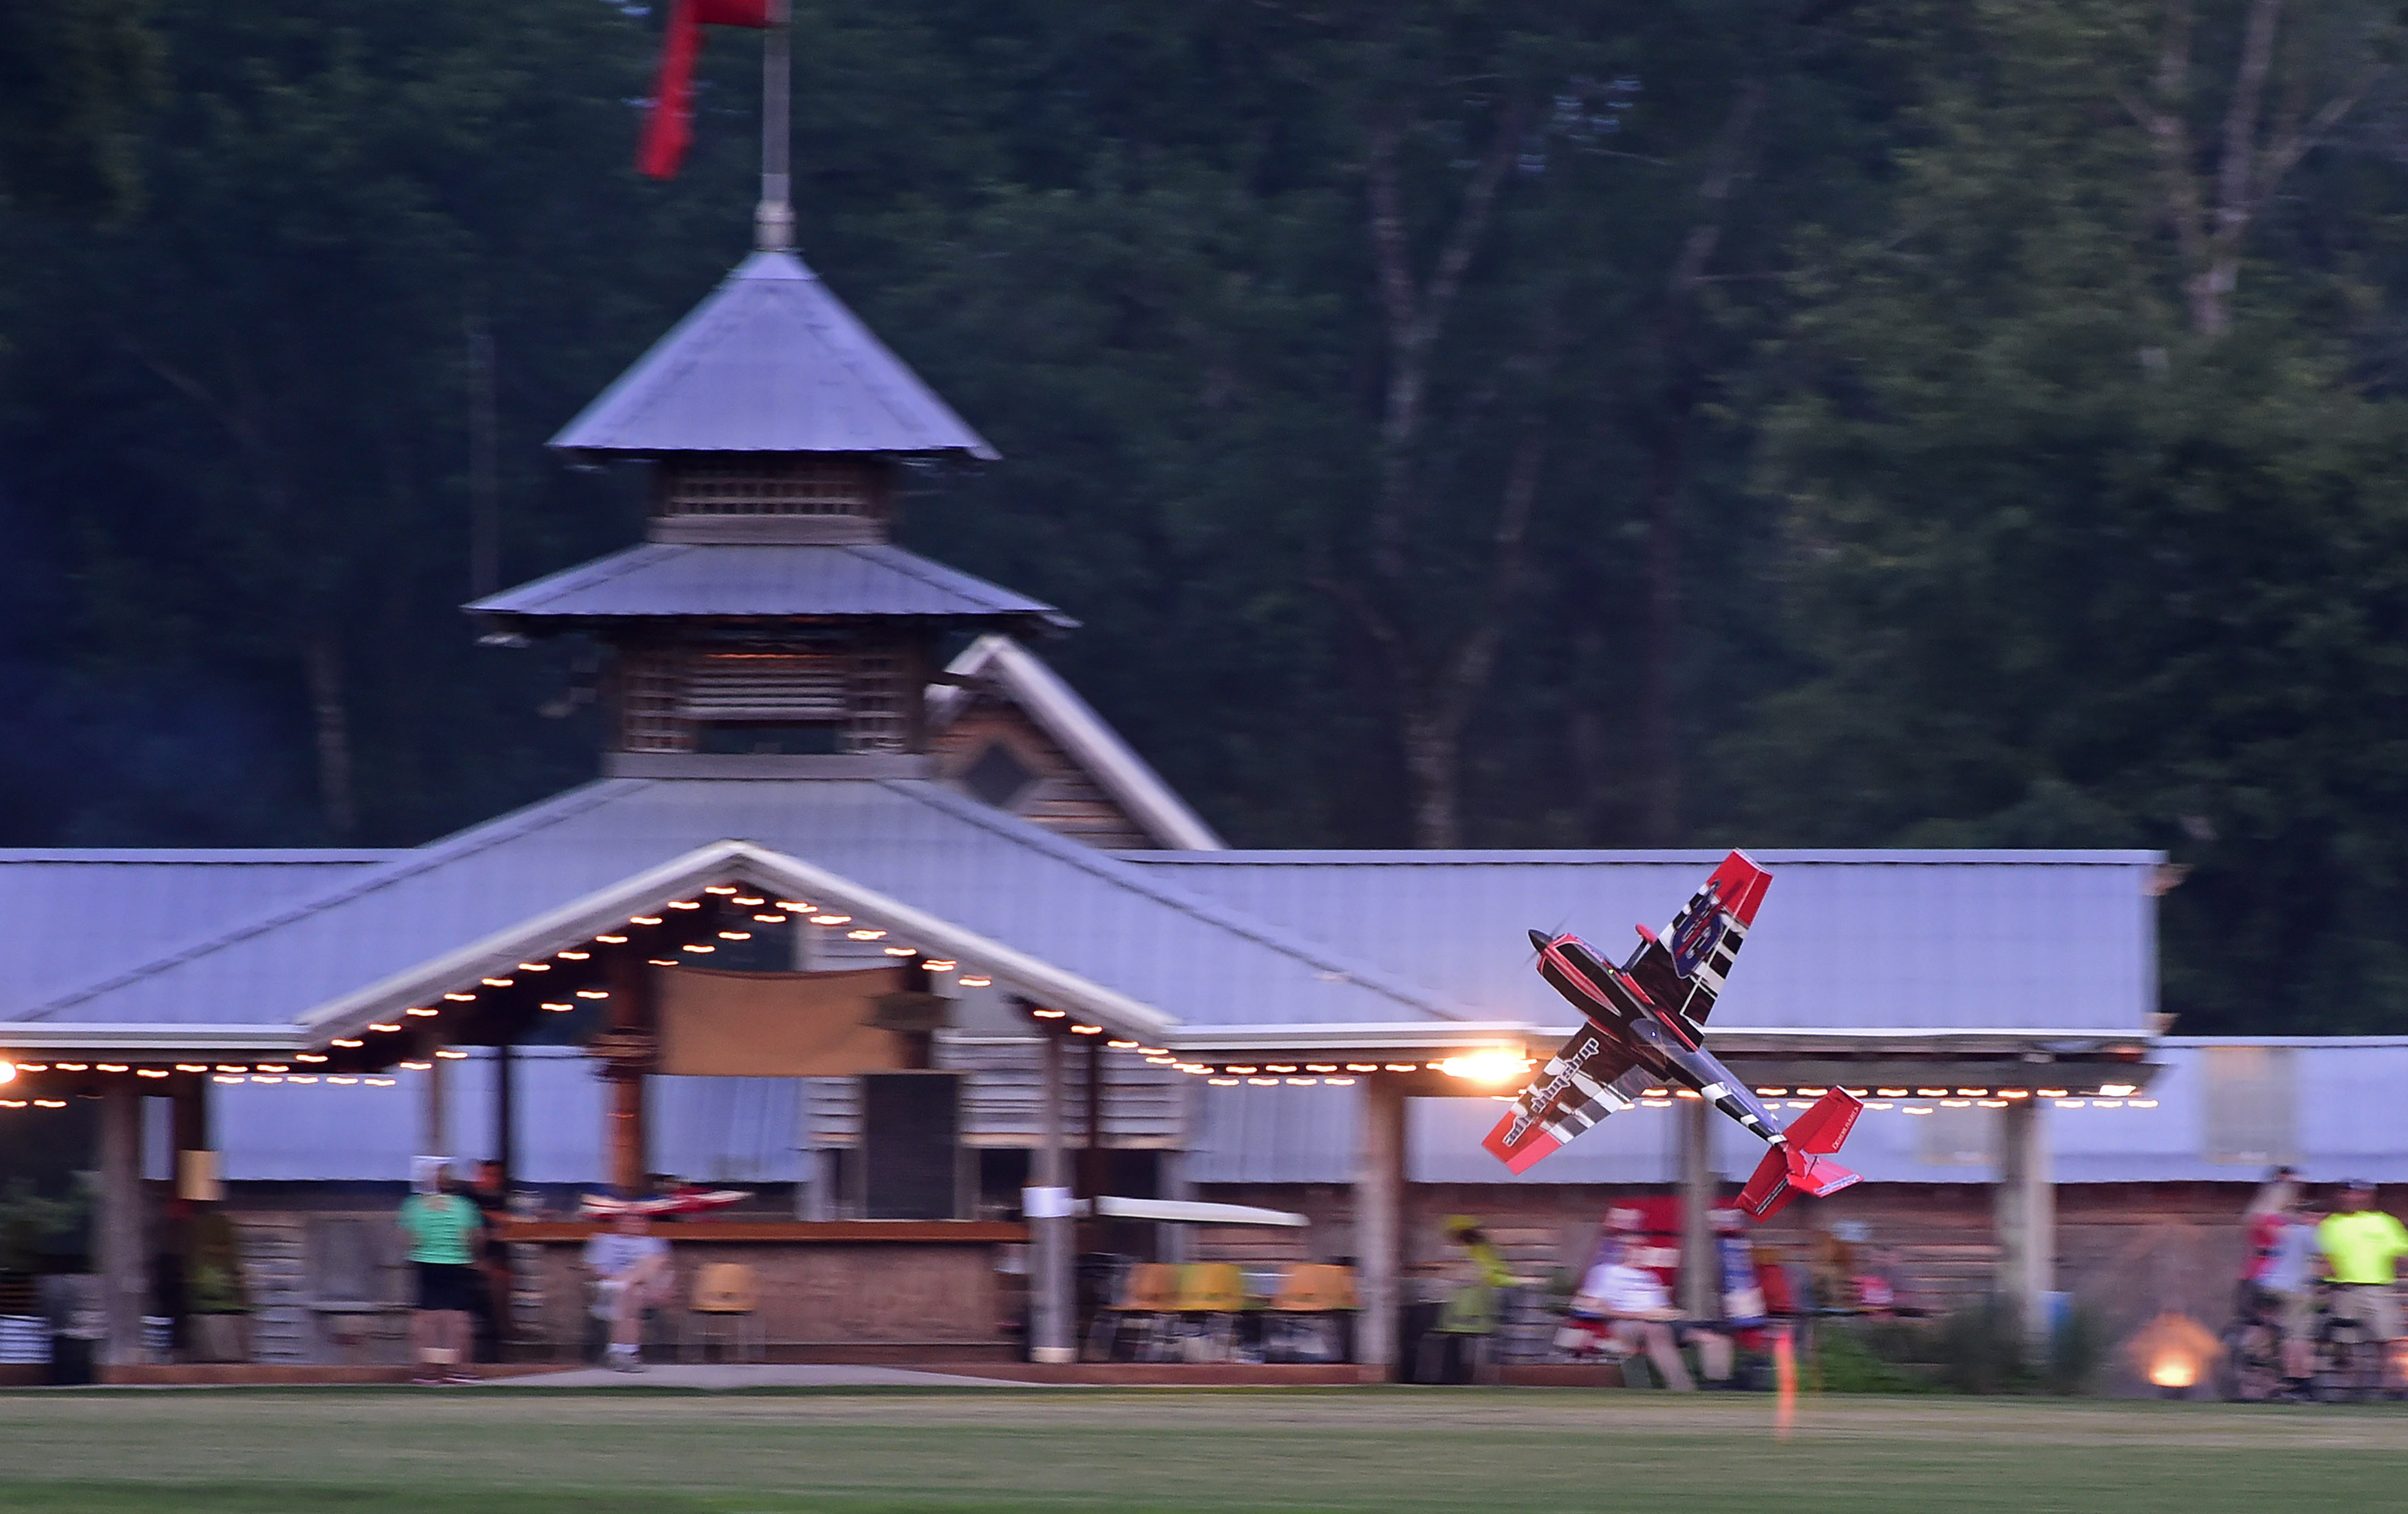 A remote-controlled aerobatic demonstration takes place near the main gazebo during the Young Aviators Fly-In at Triple Tree Aerodrome June 8 to 10 in Woodruff, South Carolina. Photo by David Tulis.